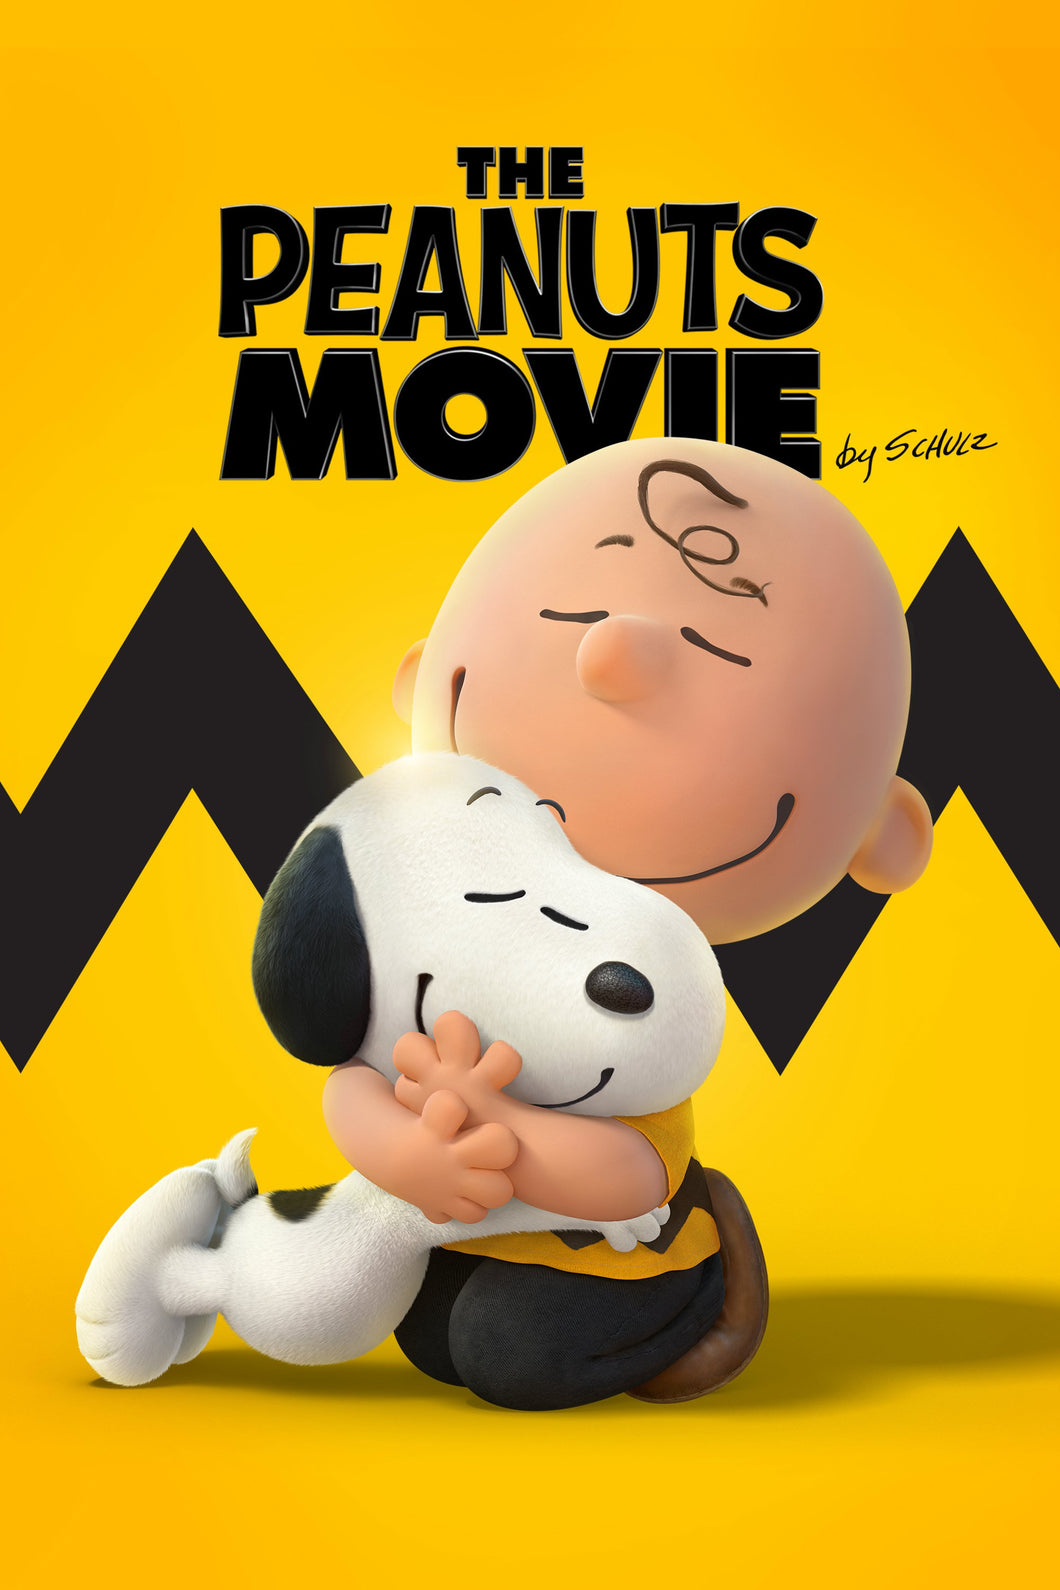 The Peanuts Movie | HD Movies Anywhere Code Ports to Vudu, iTunes, GP - Movie Sometimes